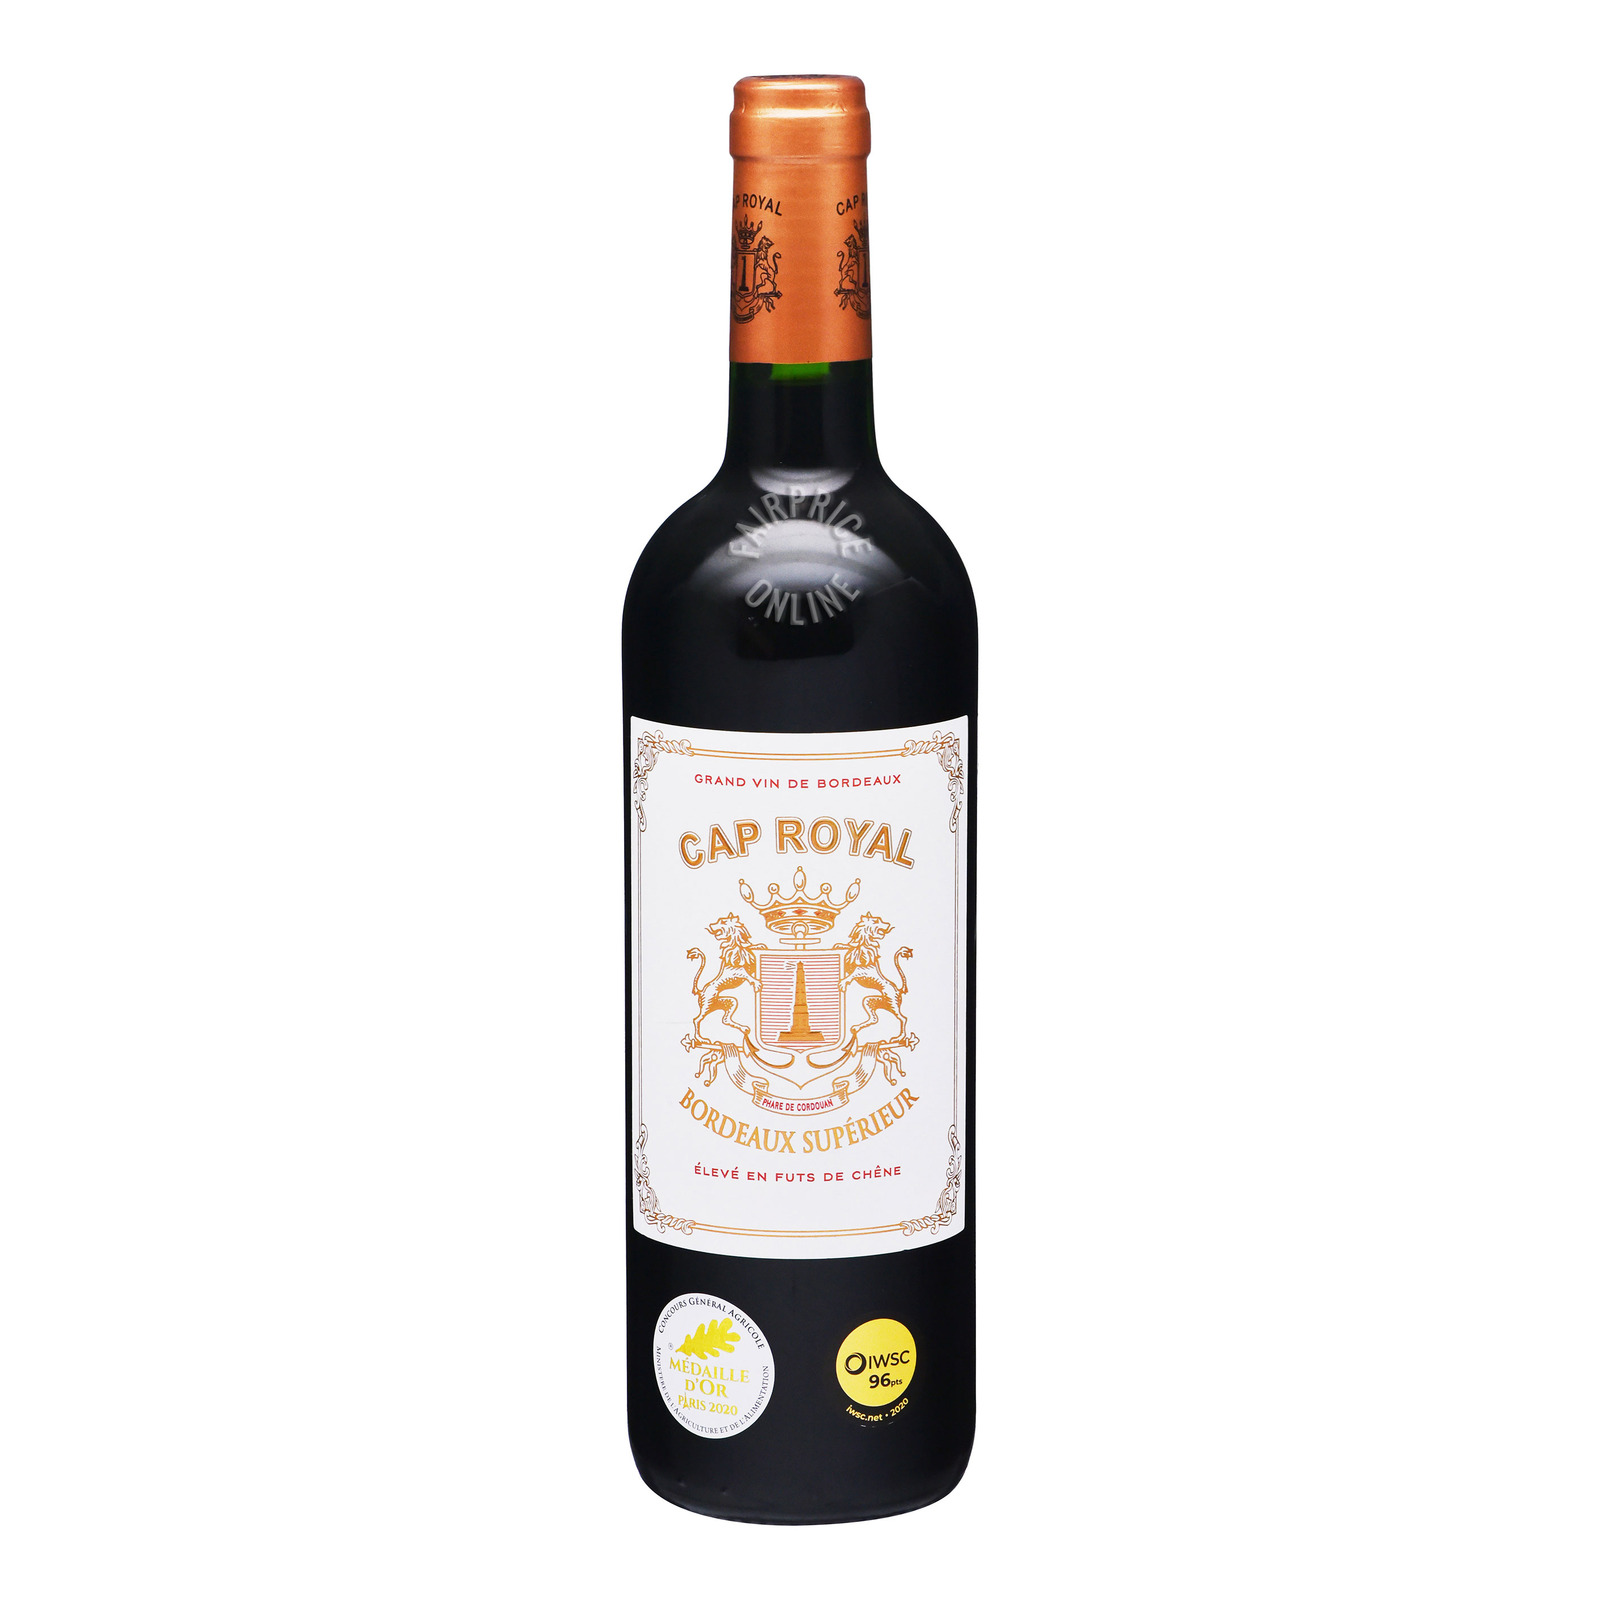 Cap Royal Bordeaux Red Wine - Superieur